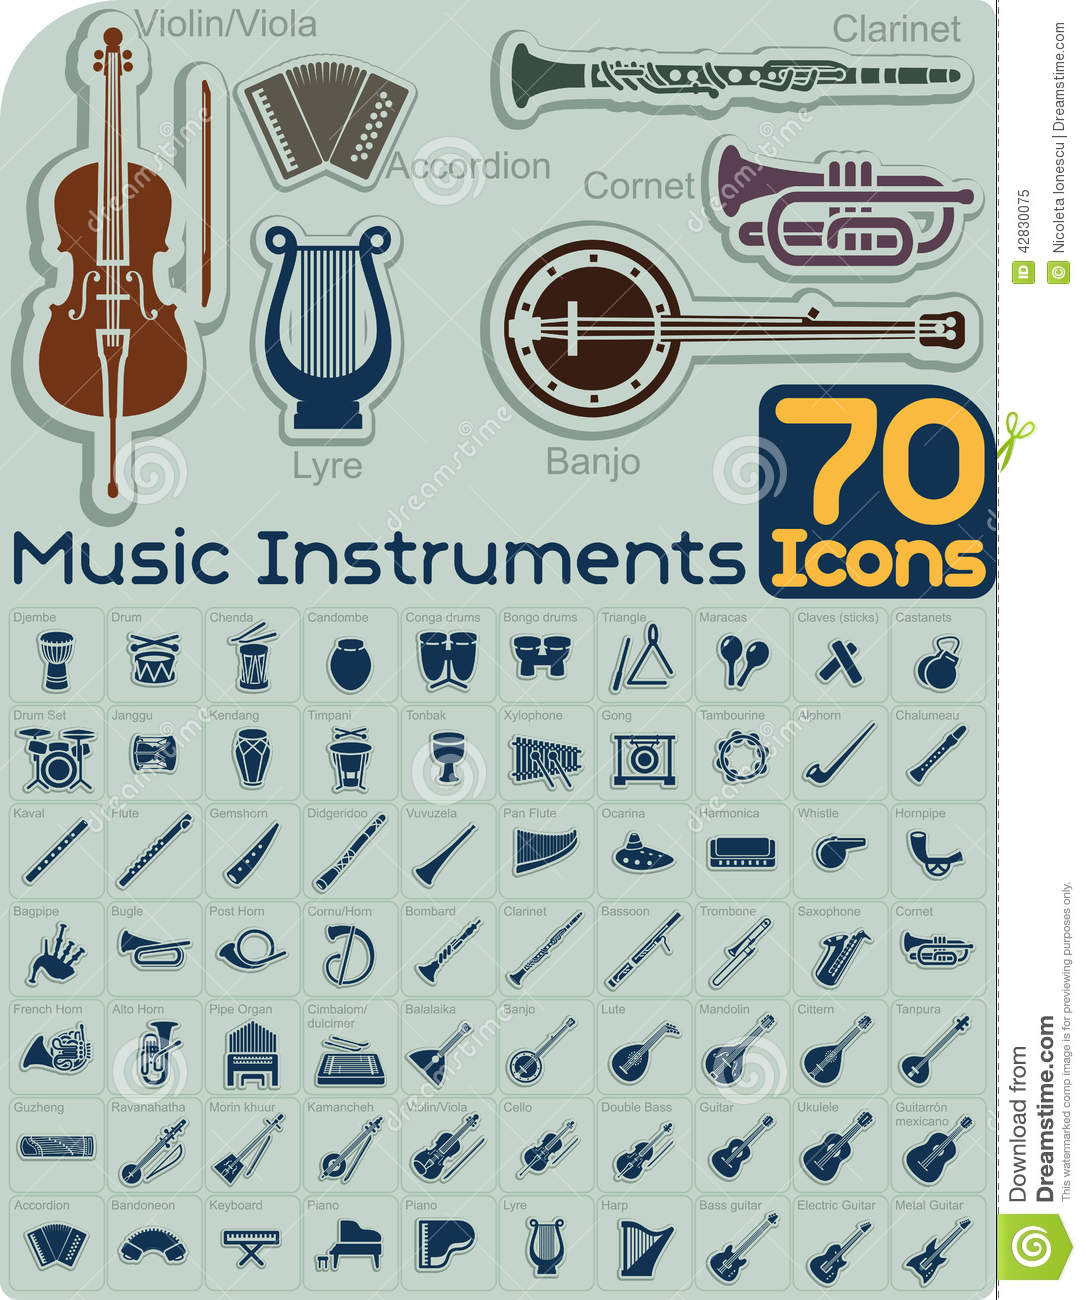 70 Music Instruments Icons Vector Set